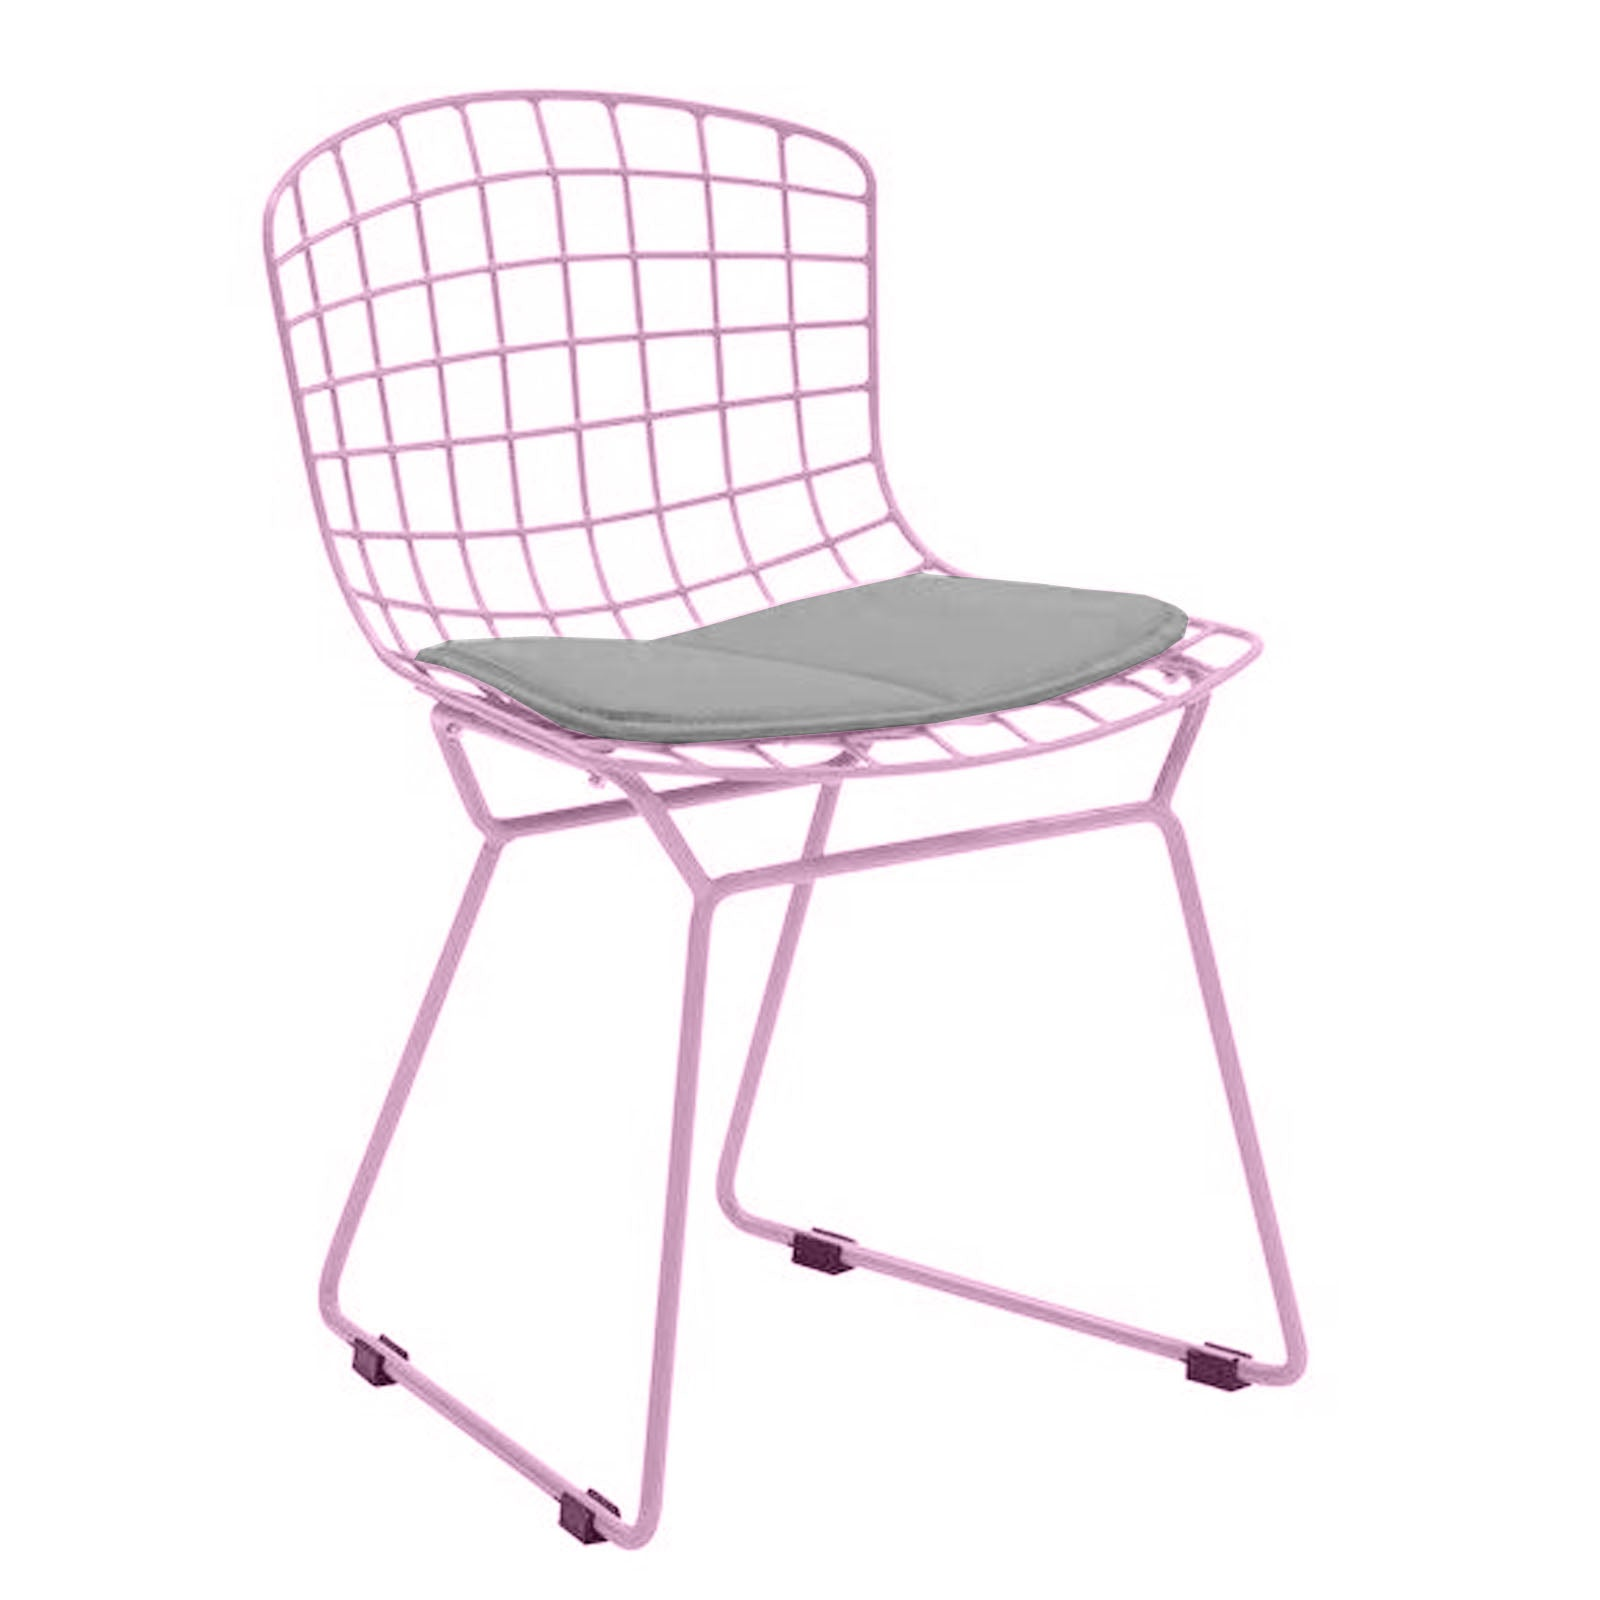 Kids wire Chair MC-024A-P -  كرسي سلك للأطفال - Shop Online Furniture and Home Decor Store in Dubai, UAE at ebarza